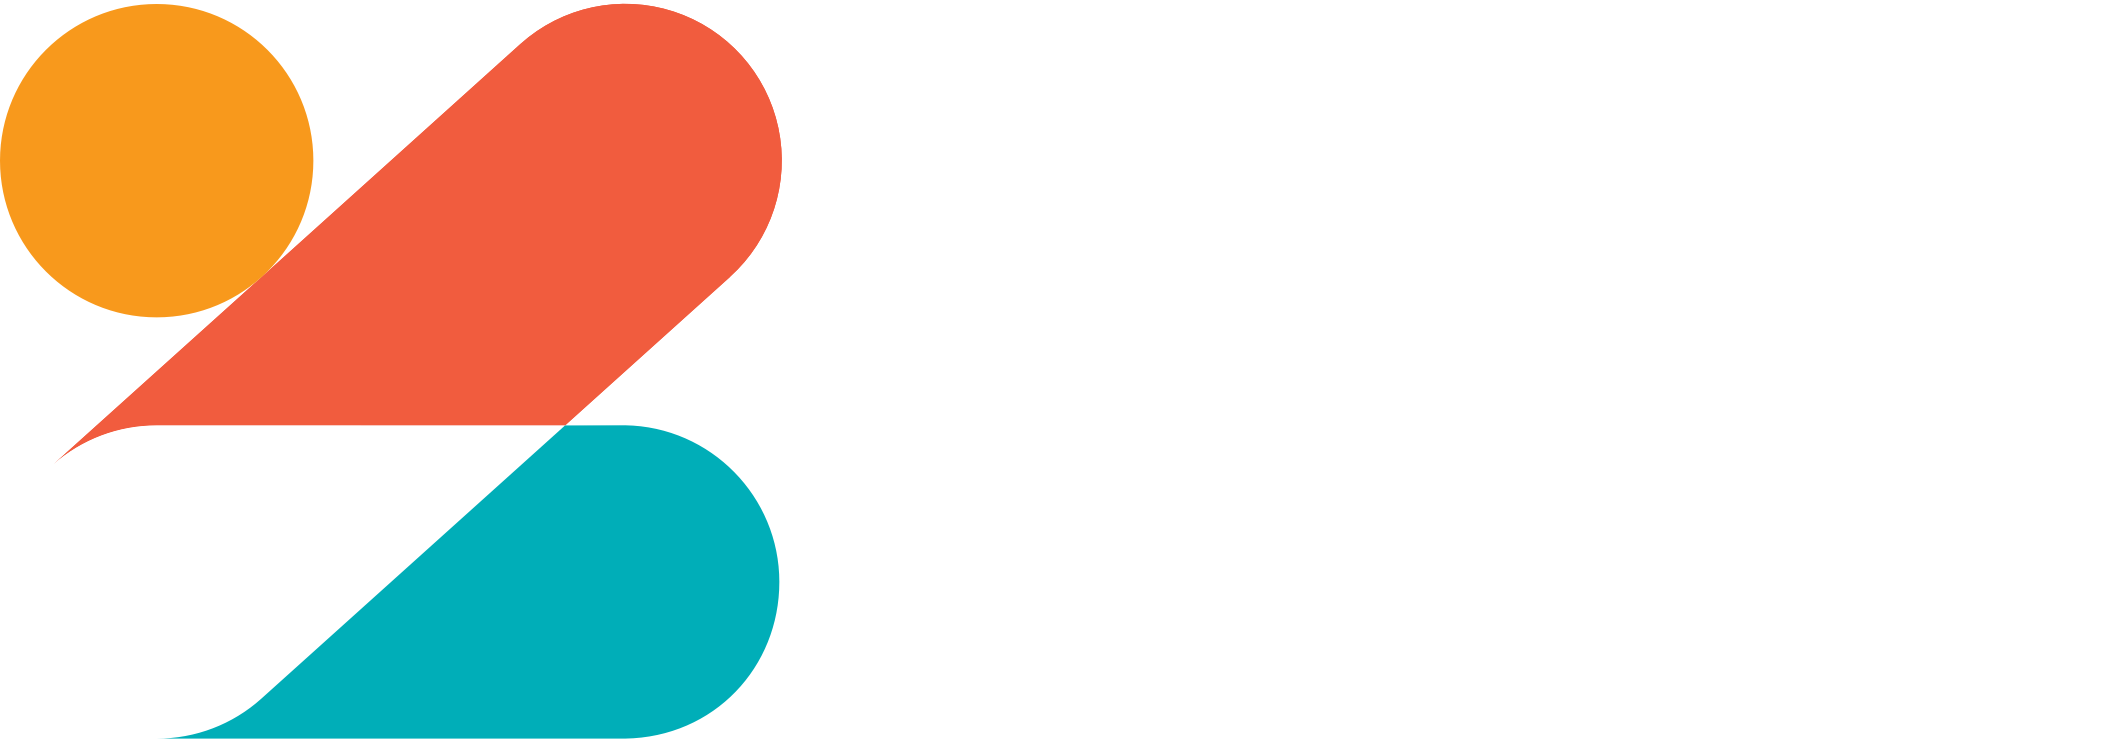 logo of Zip